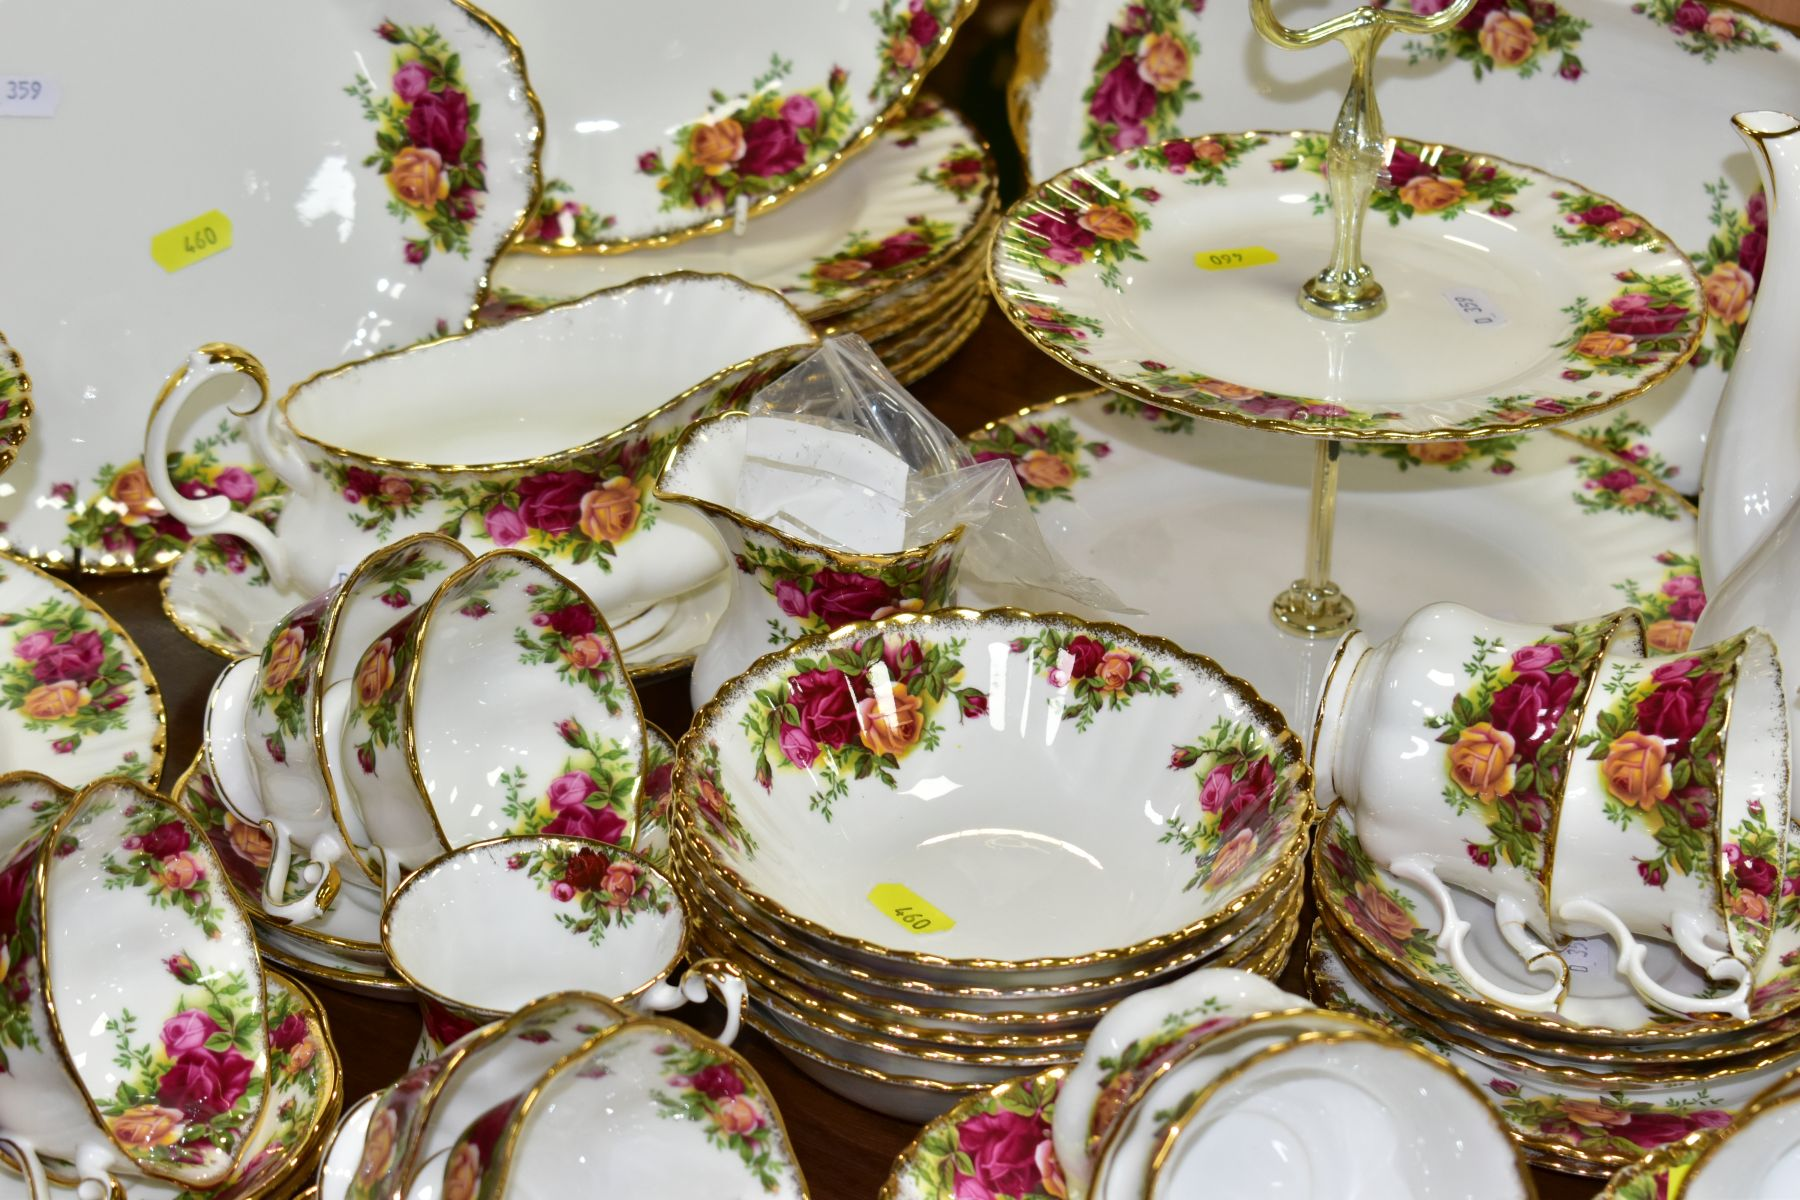 ROYAL ALBERT 'OLD COUNTRY ROSES' DINNER/TEA WARES, NOVELTY TEAPOTS AND TRINKETS, comprising two - Image 12 of 12